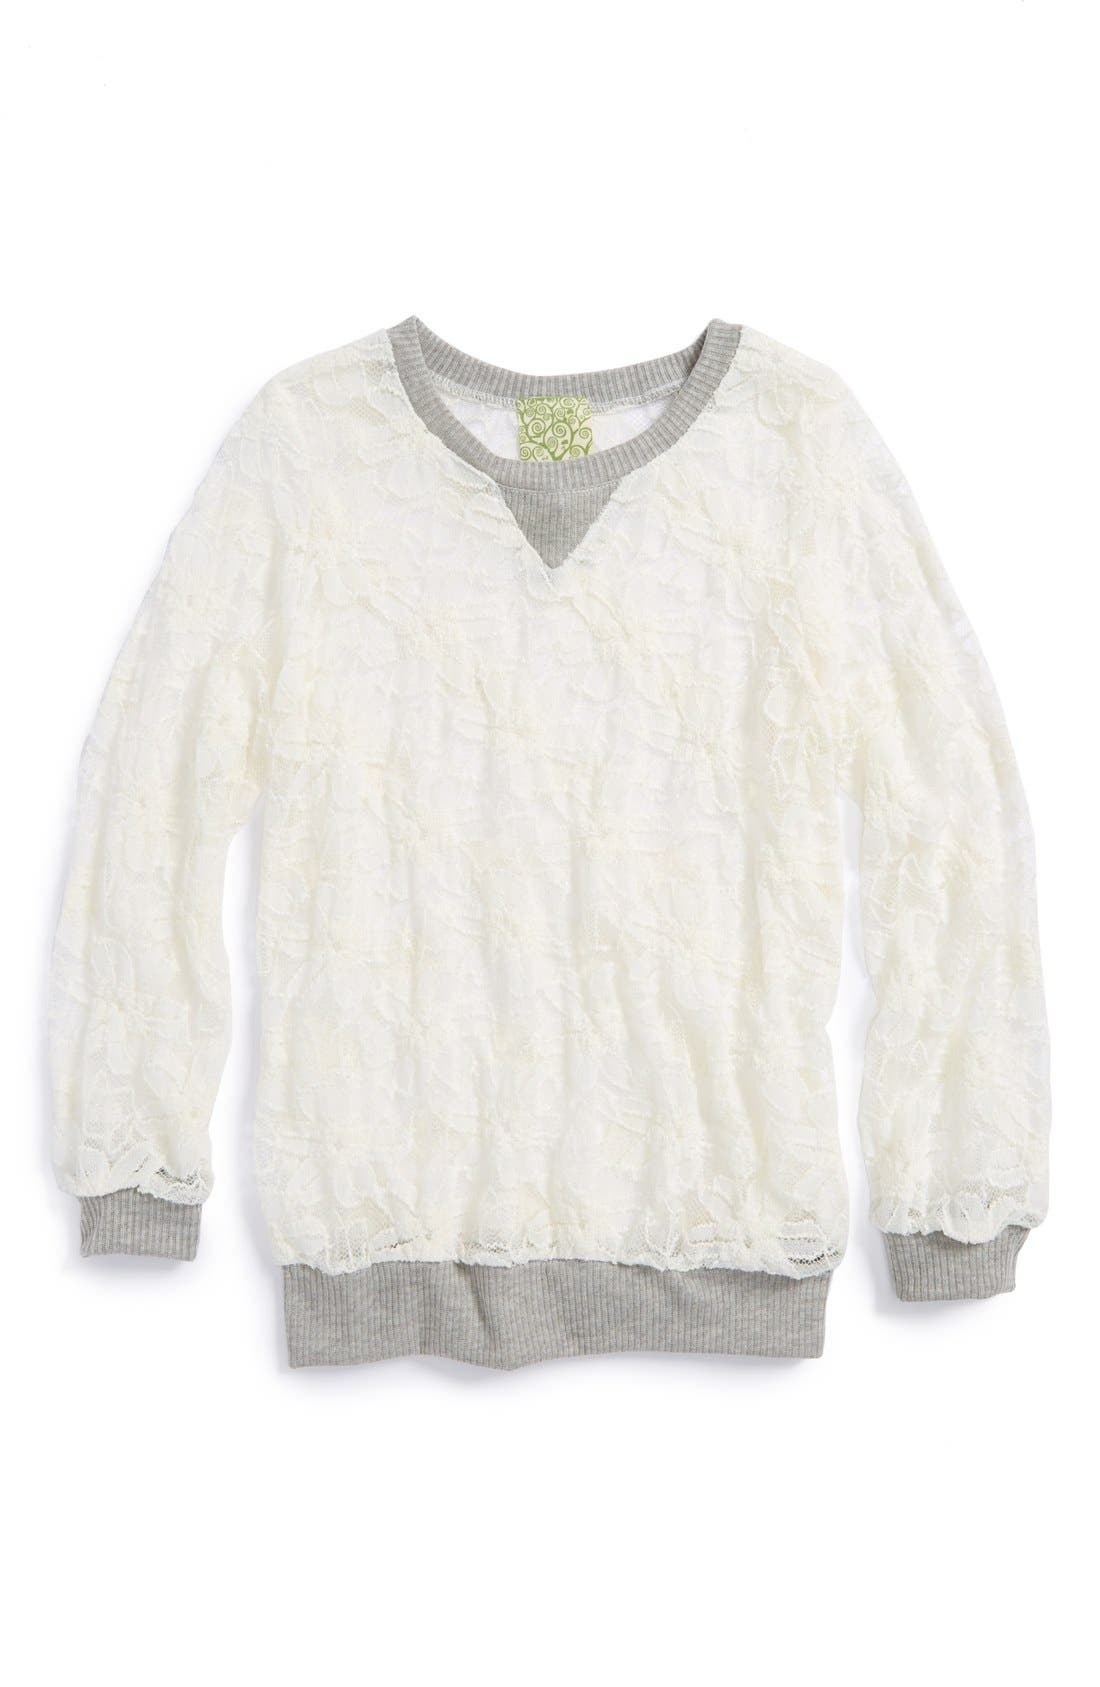 Main Image - Kiddo Sheer Floral Lace Sweatshirt (Big Girls)